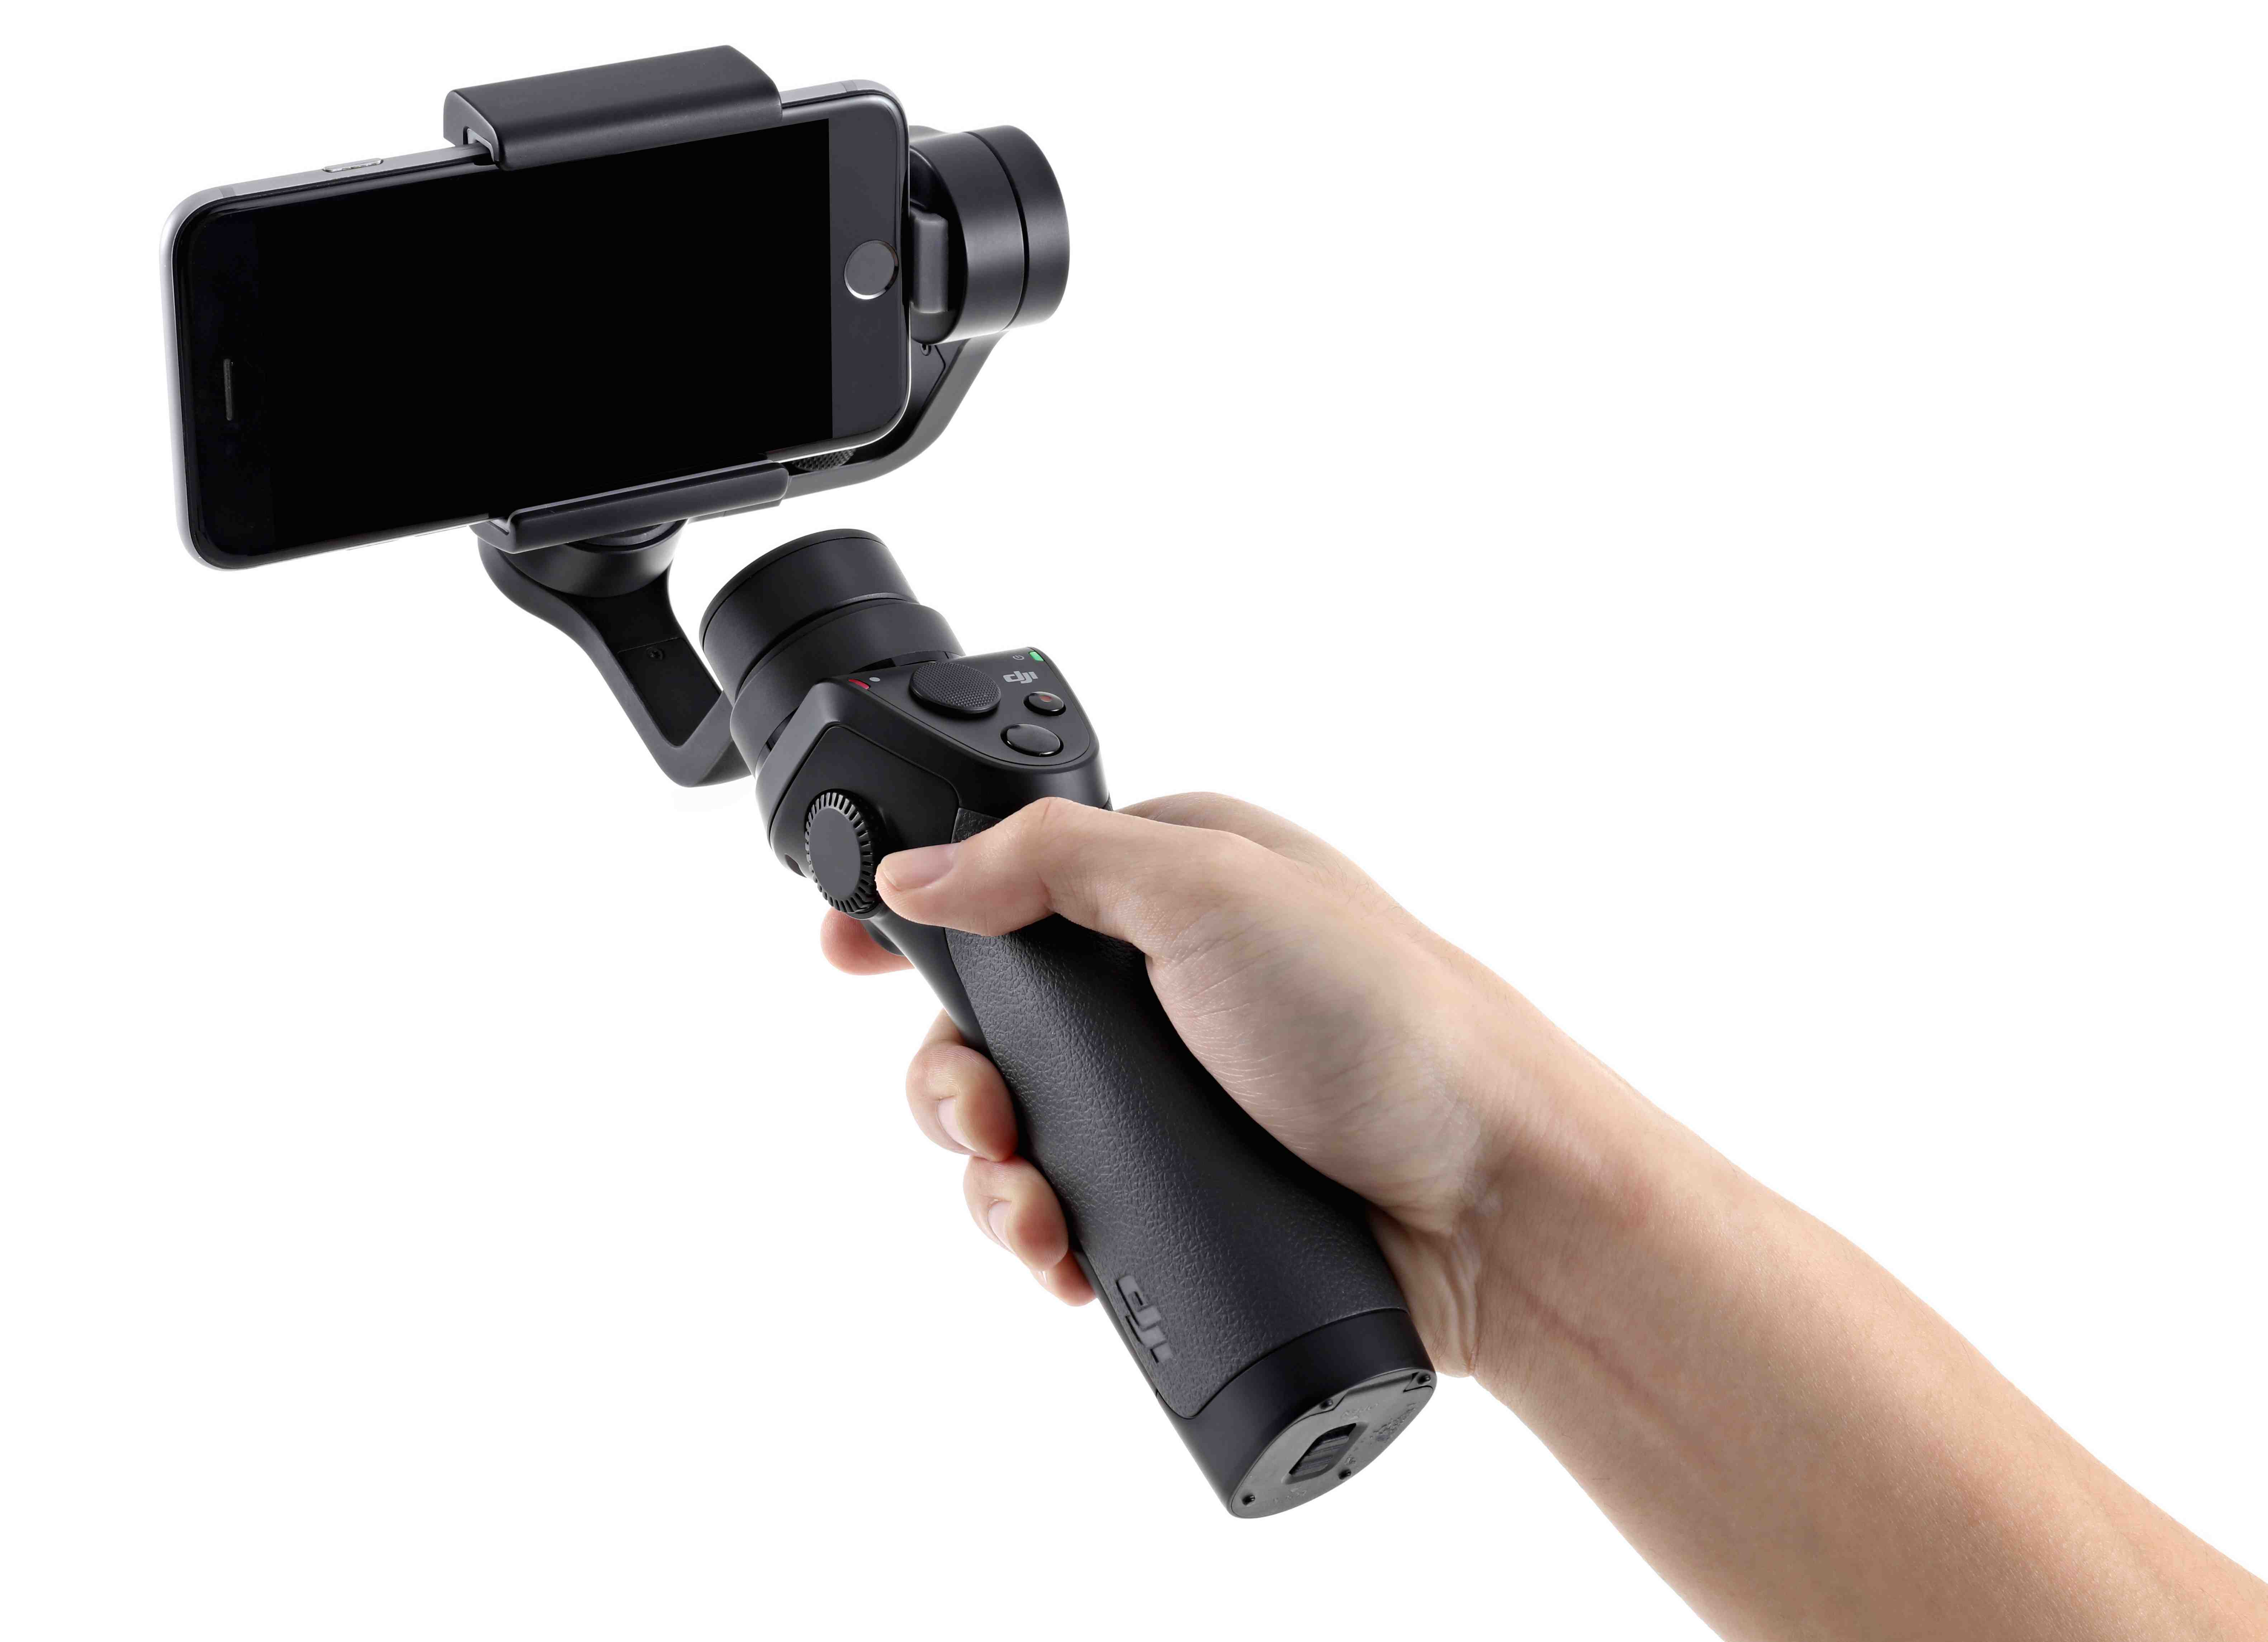 Dji Osmo Goes Mobile Periscopers Vloggers And Mojos